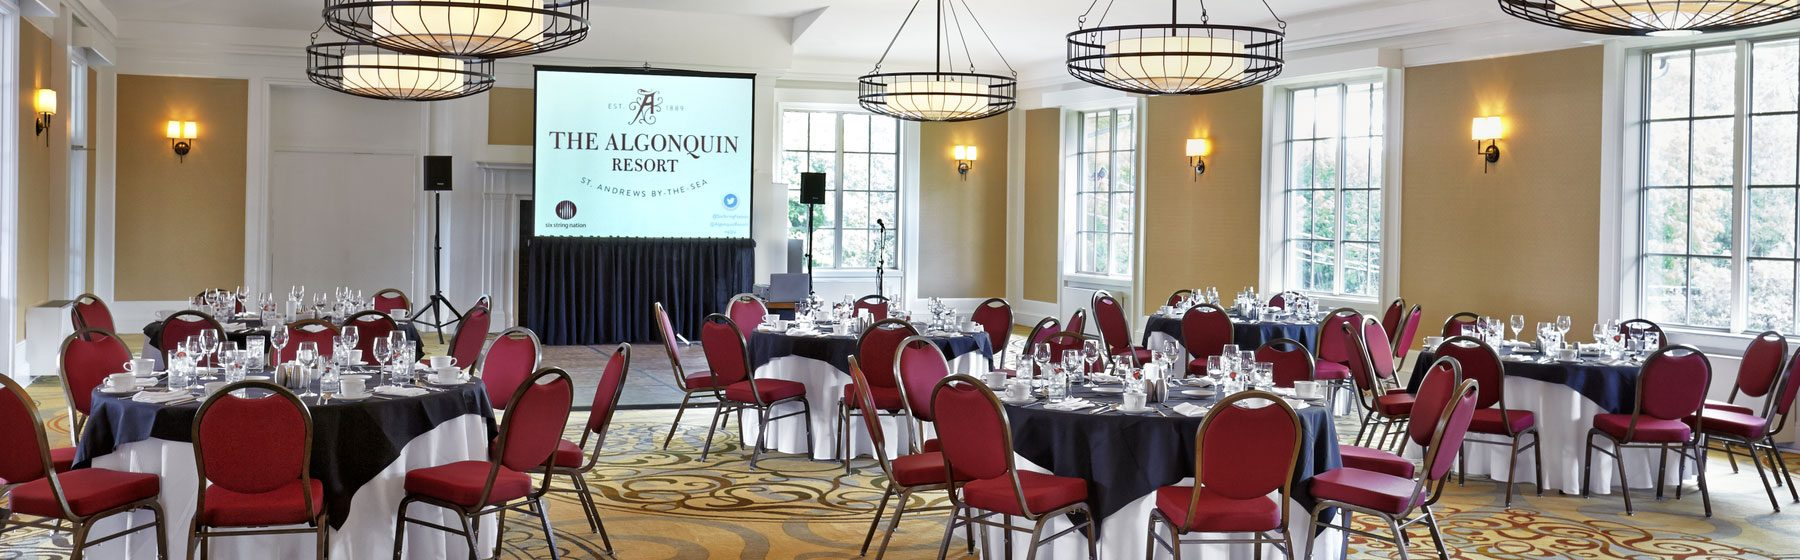 Meeting Planner at Algonquin resort, Andrews By The Sea